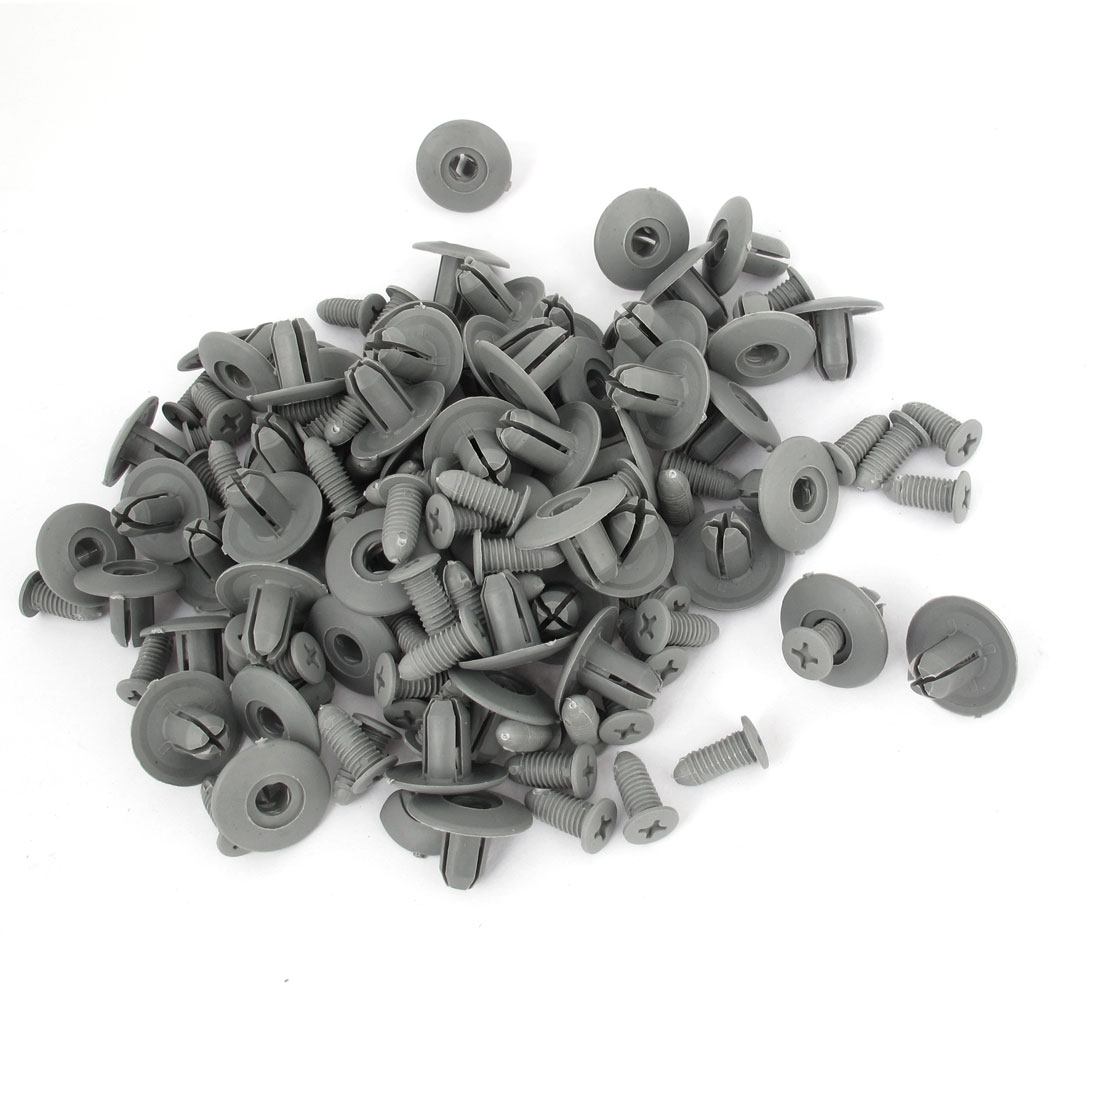 100 PCS Push in Type Plastic Rivets Fender Clips Gray for 8mm Hole